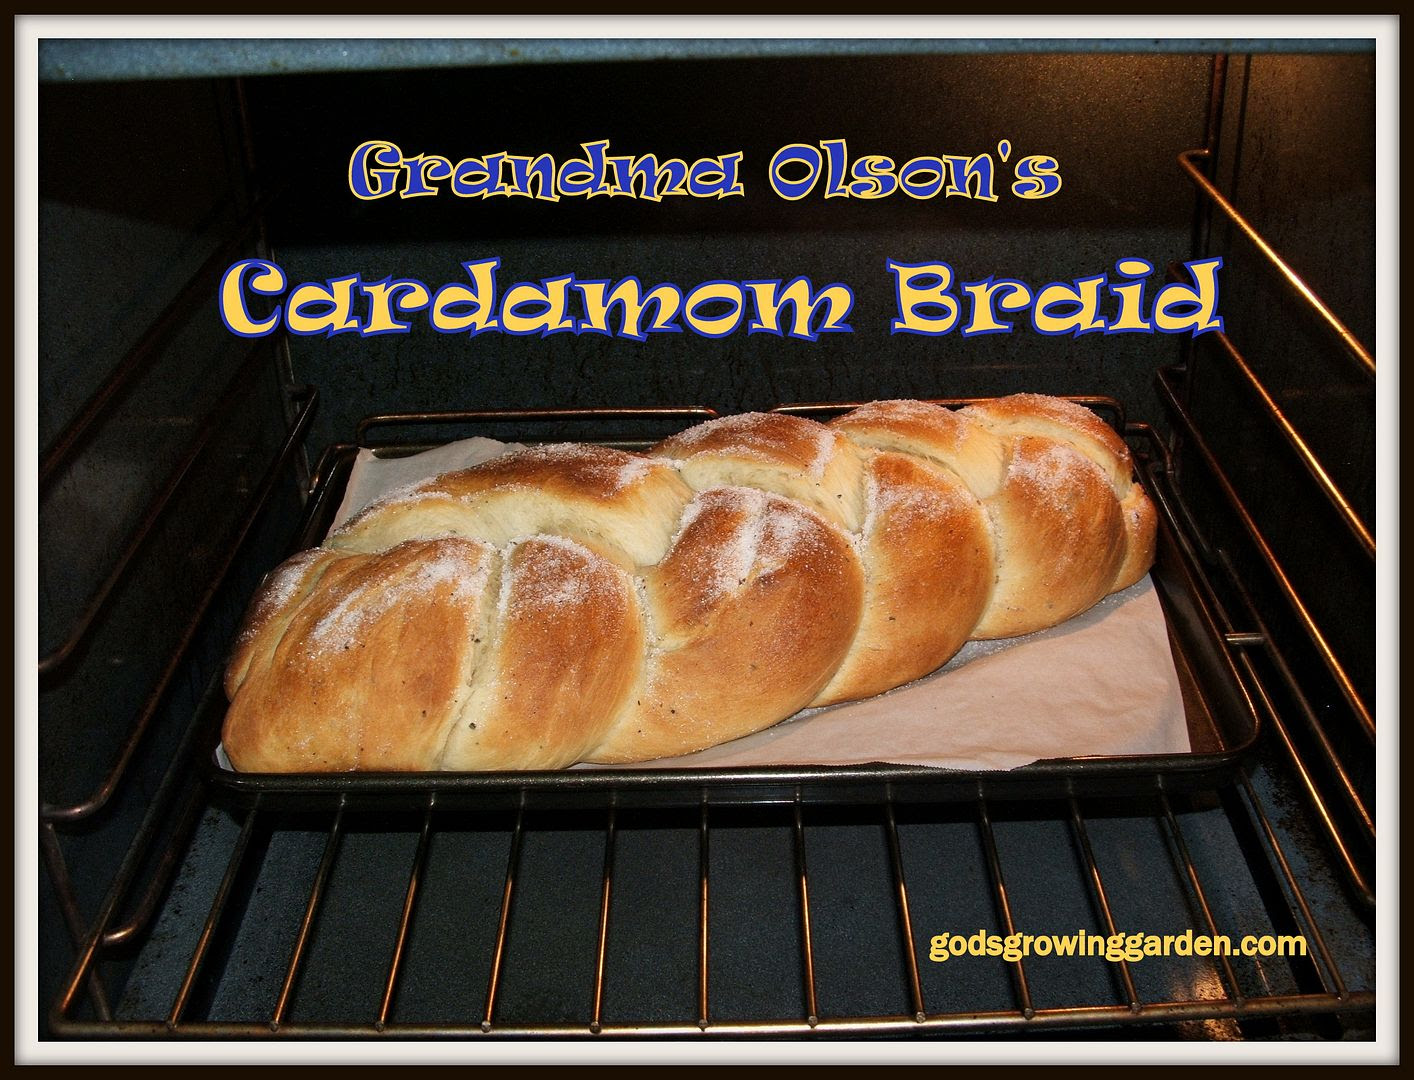 Cardamom Braid by Angie Ouellette-Tower for godsgrowinggarden.com photo 021_zps6cf5e4a6.jpg